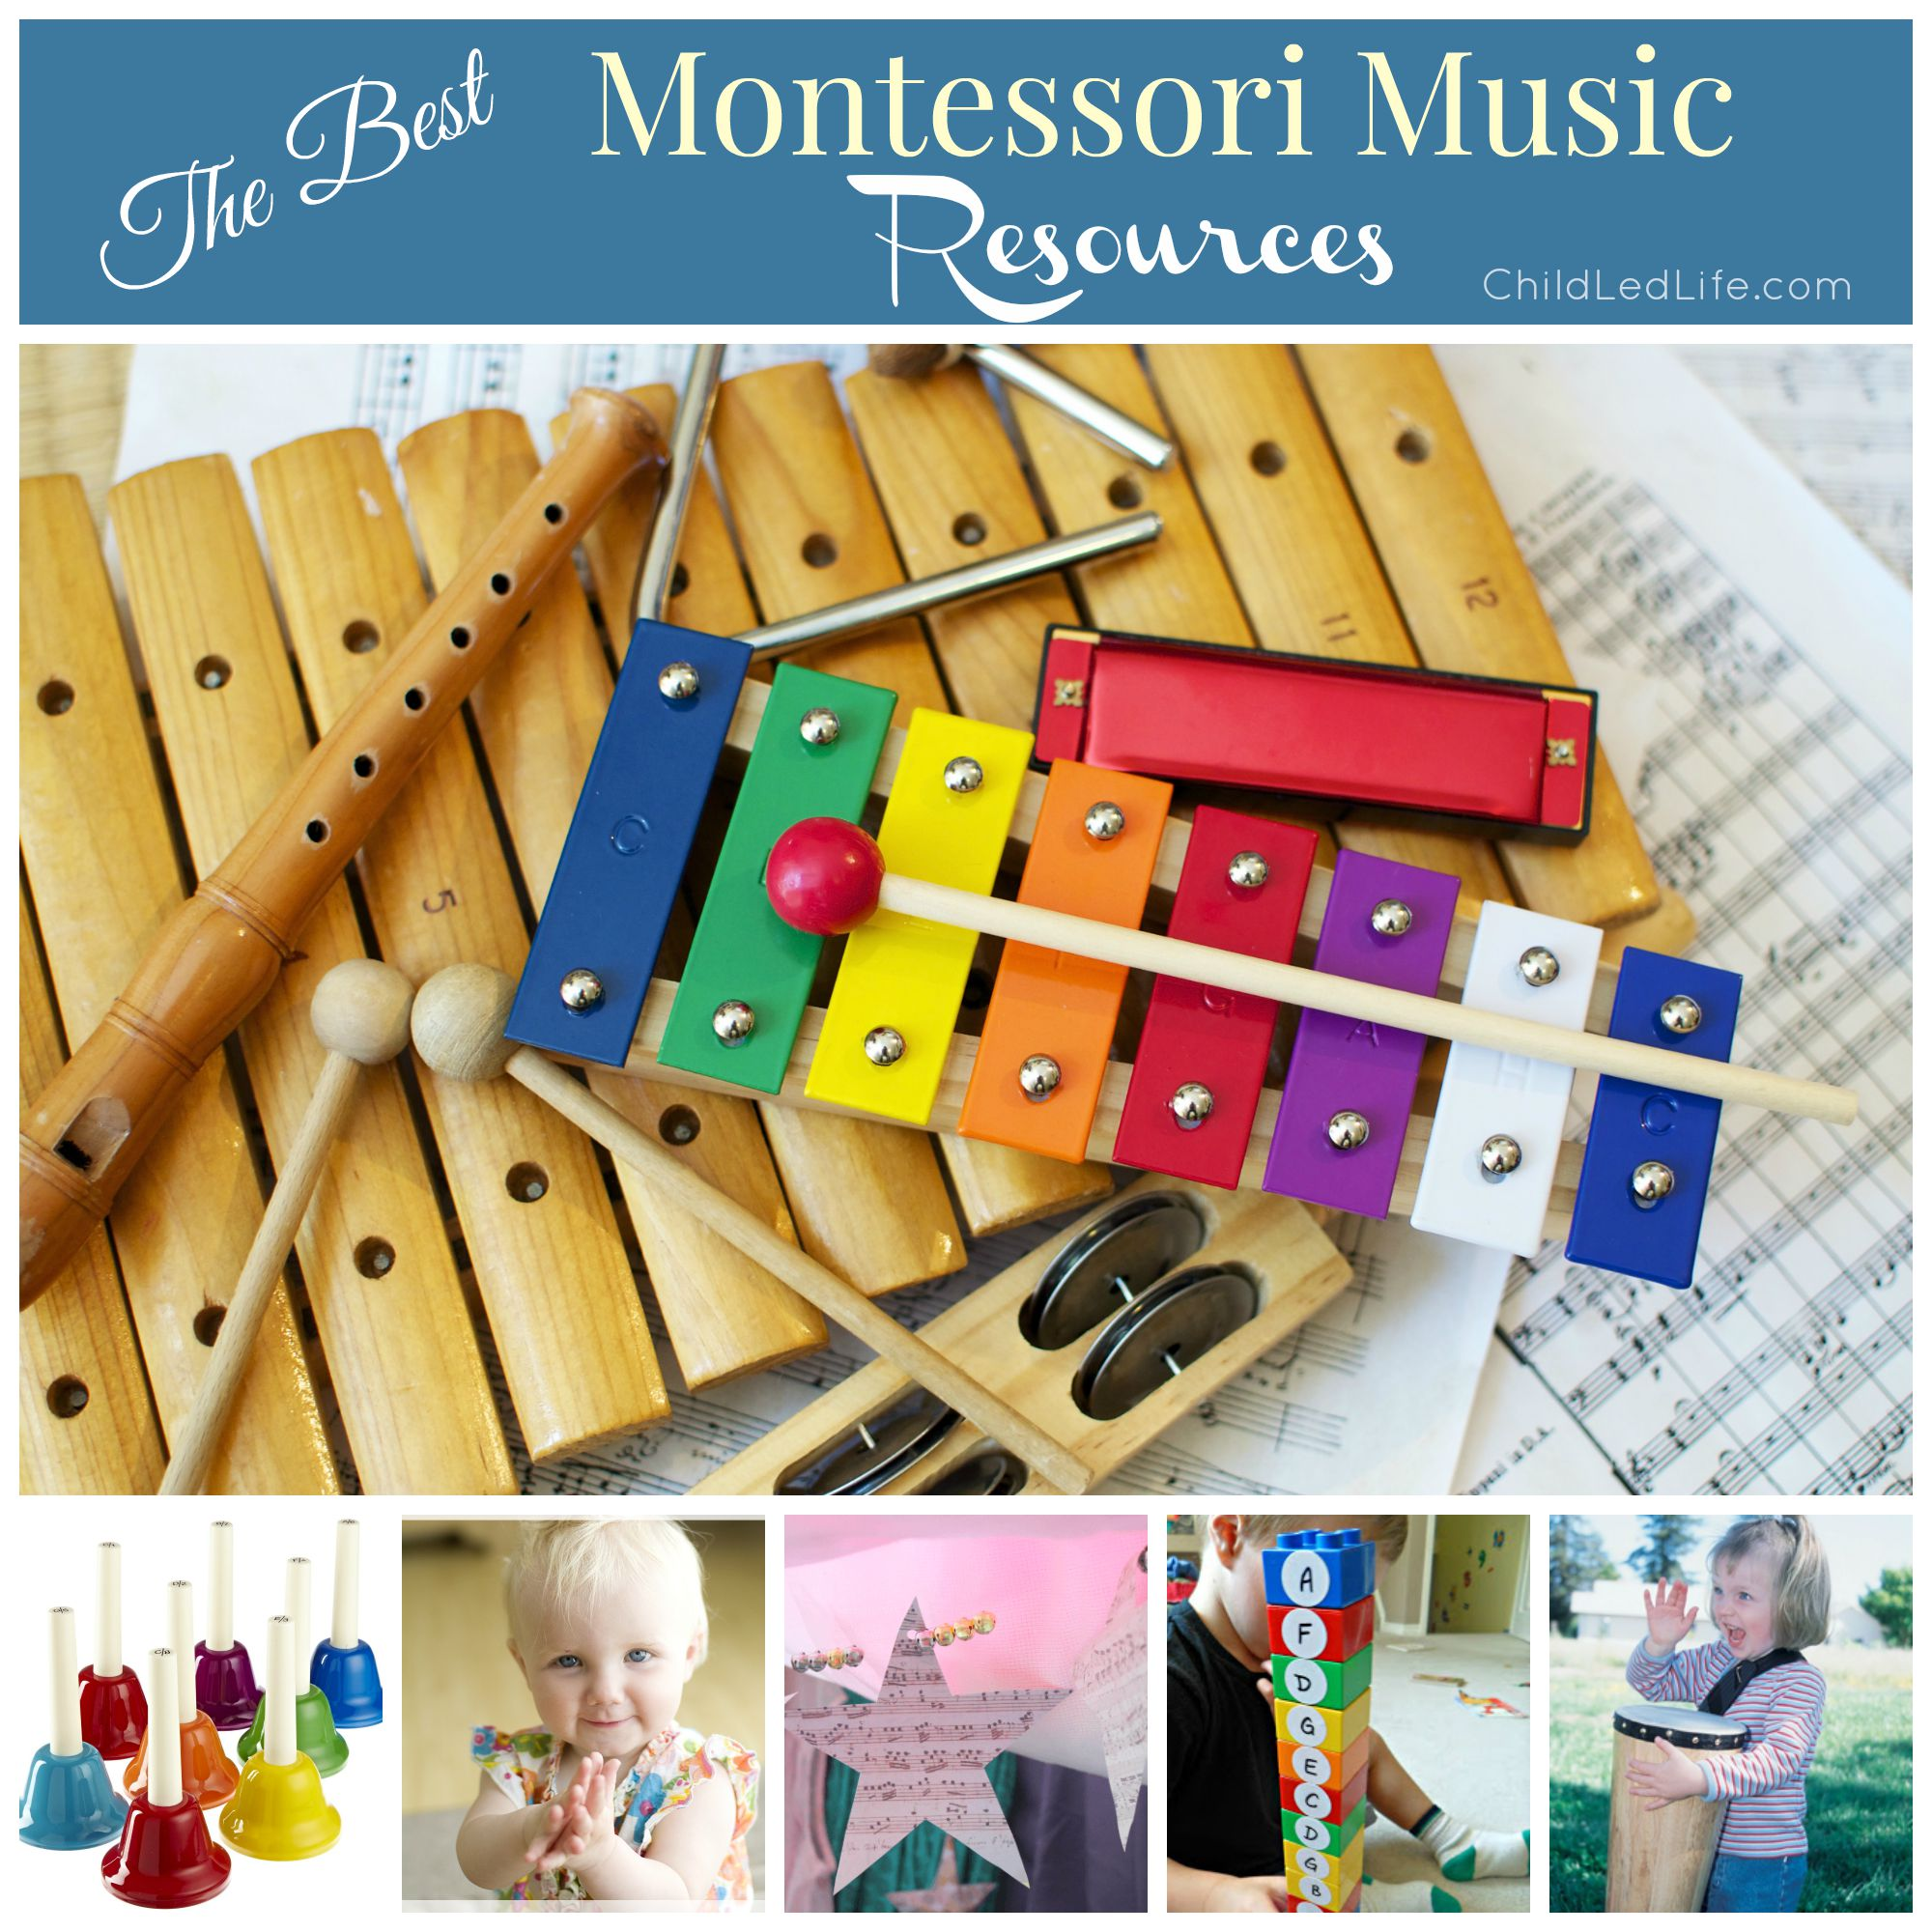 The Best Montessori Music Resources